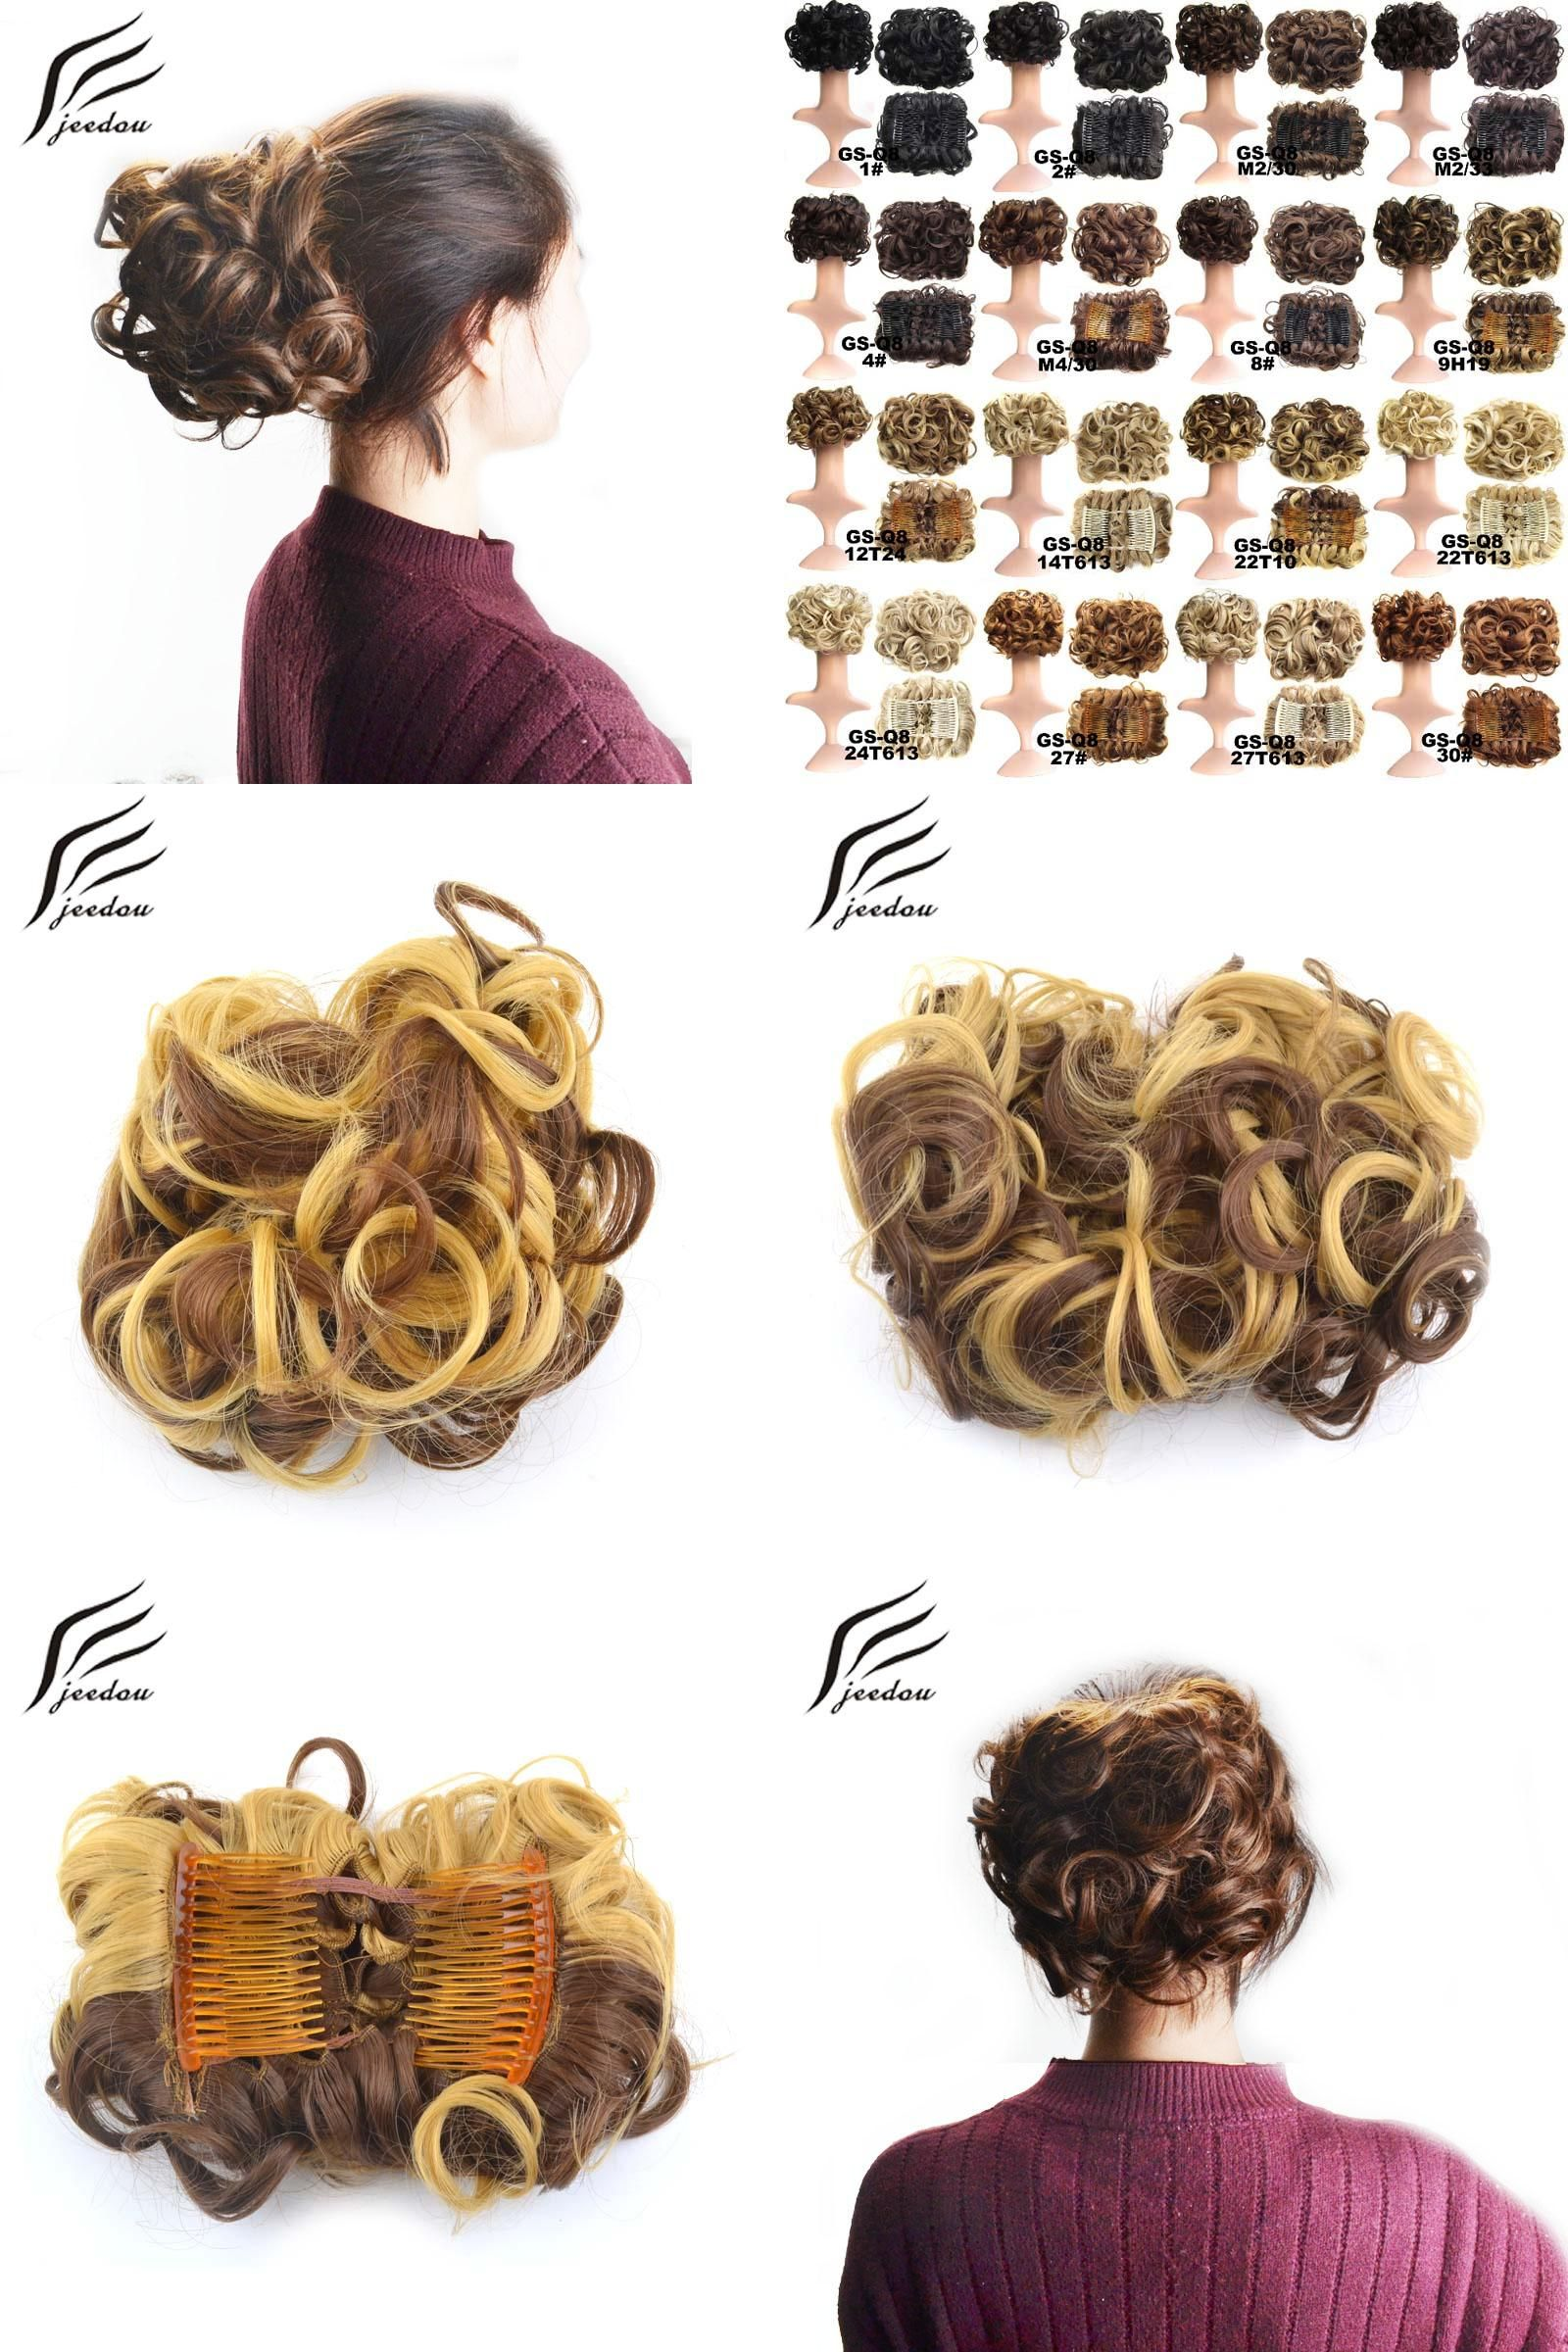 Visit To Buy Jeedou Synthetic Hair Chignon Clip In Hair Extensions